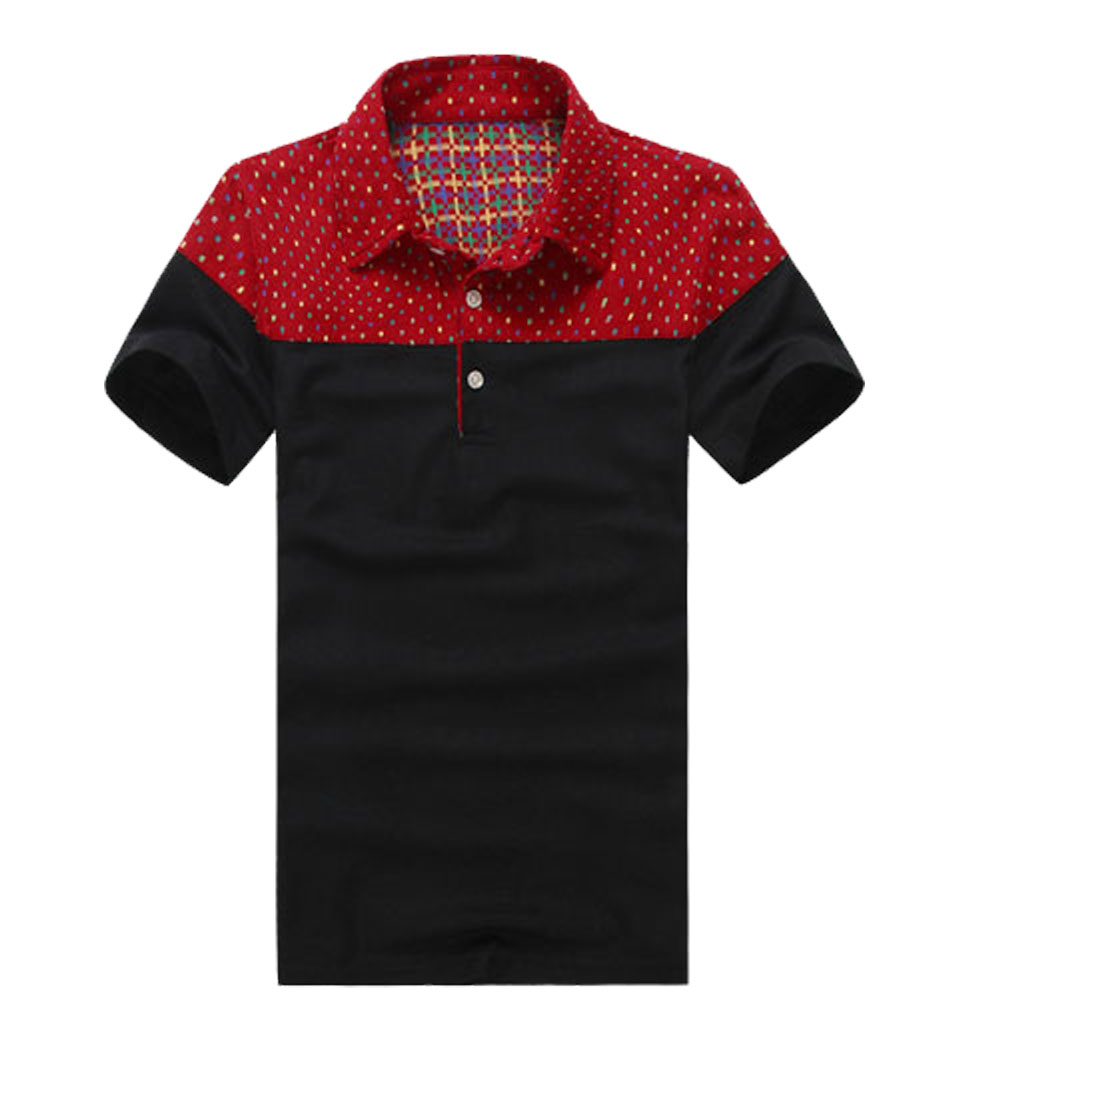 Men Red Black Polo Collar Geometric Pattern Casual Shirt M